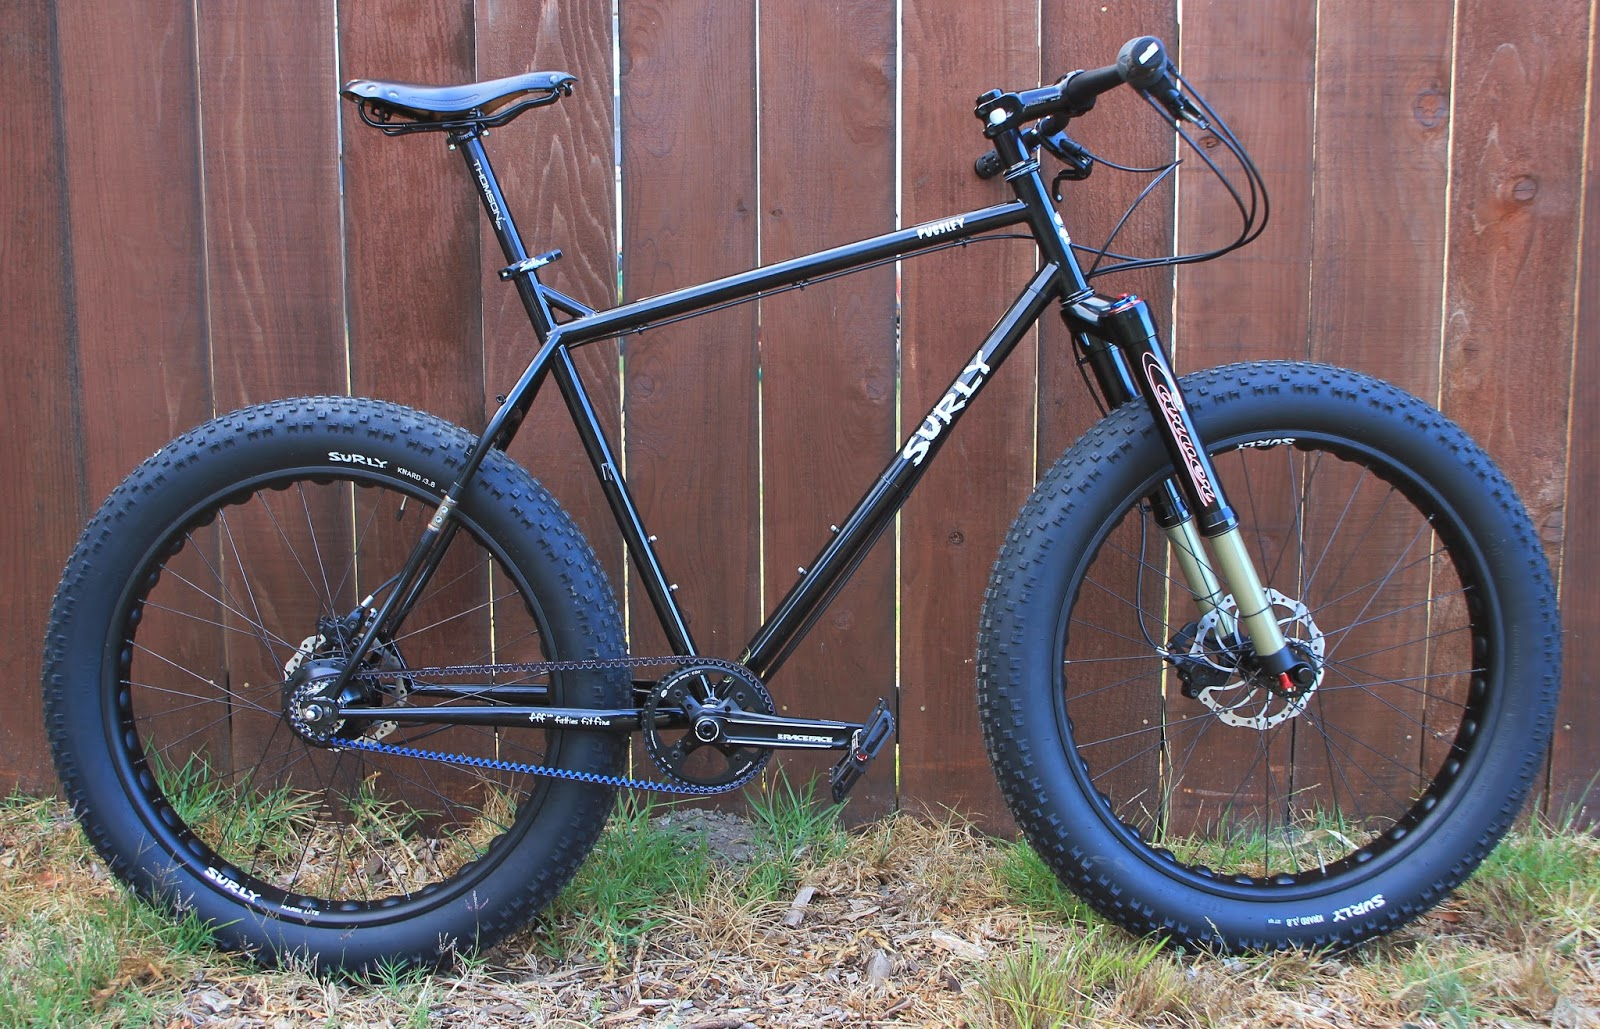 c1329908382 Fatbikes are known for their wide tires' ability to provide grip and  traction in just about all trail conditions. We've built many of these bikes  with ...